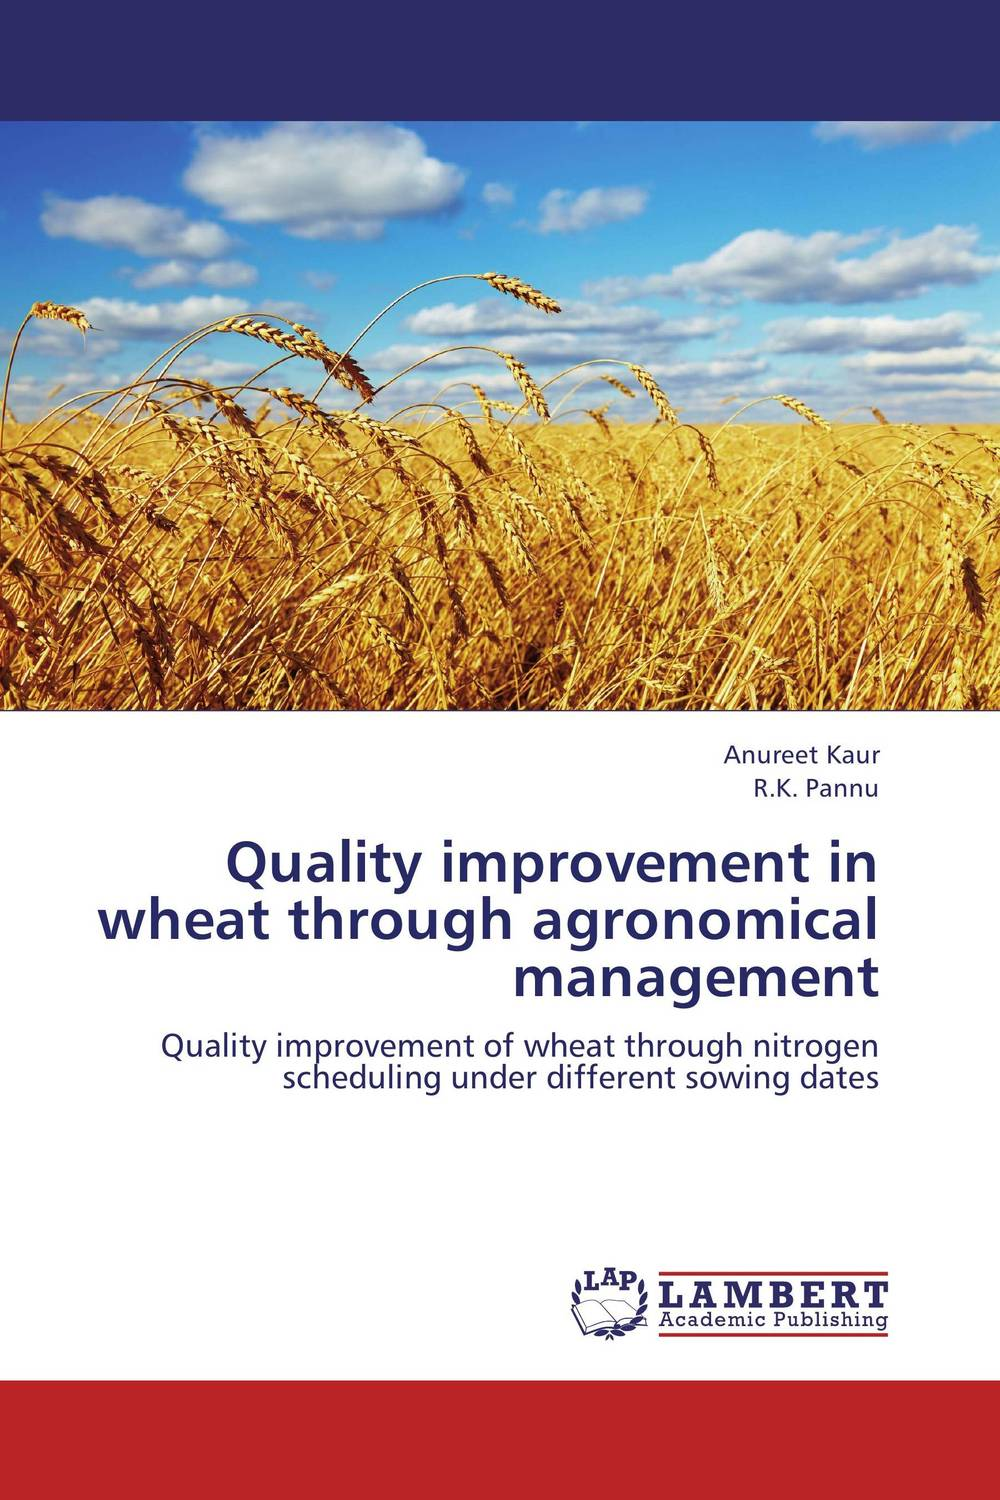 Quality improvement in wheat through agronomical management